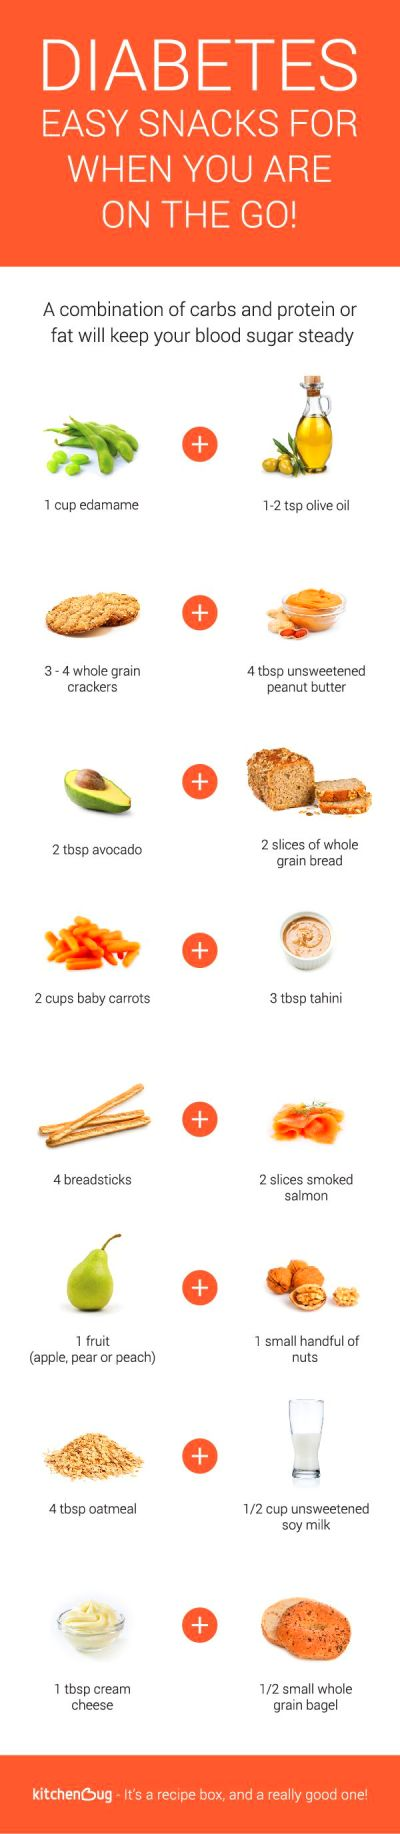 17 Best ideas about Diabetic Snacks on Pinterest | Carb ...